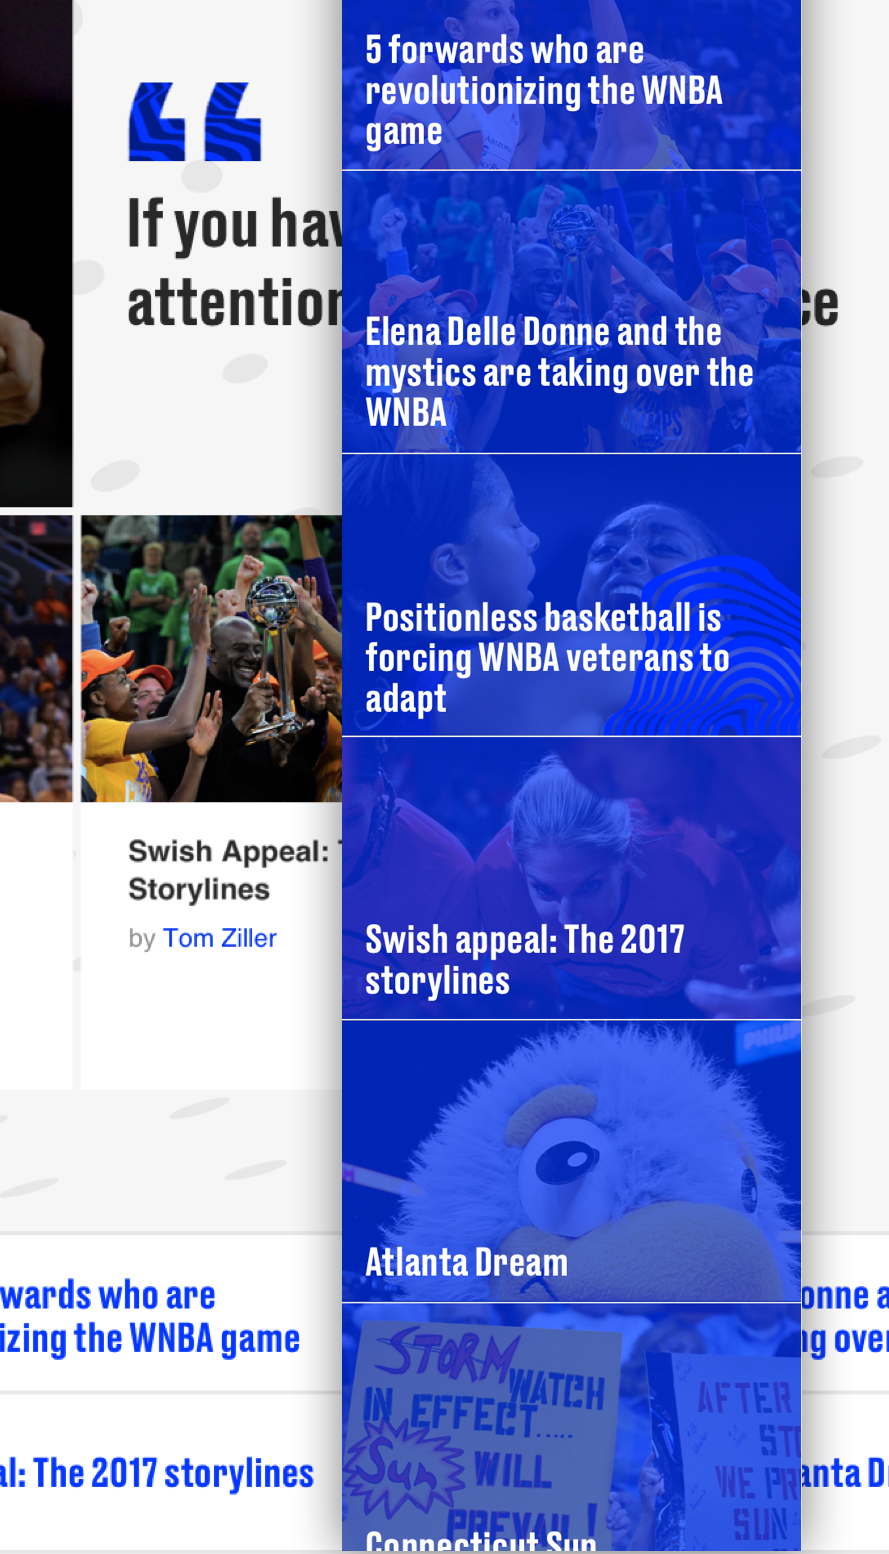 SB Nation visual detail